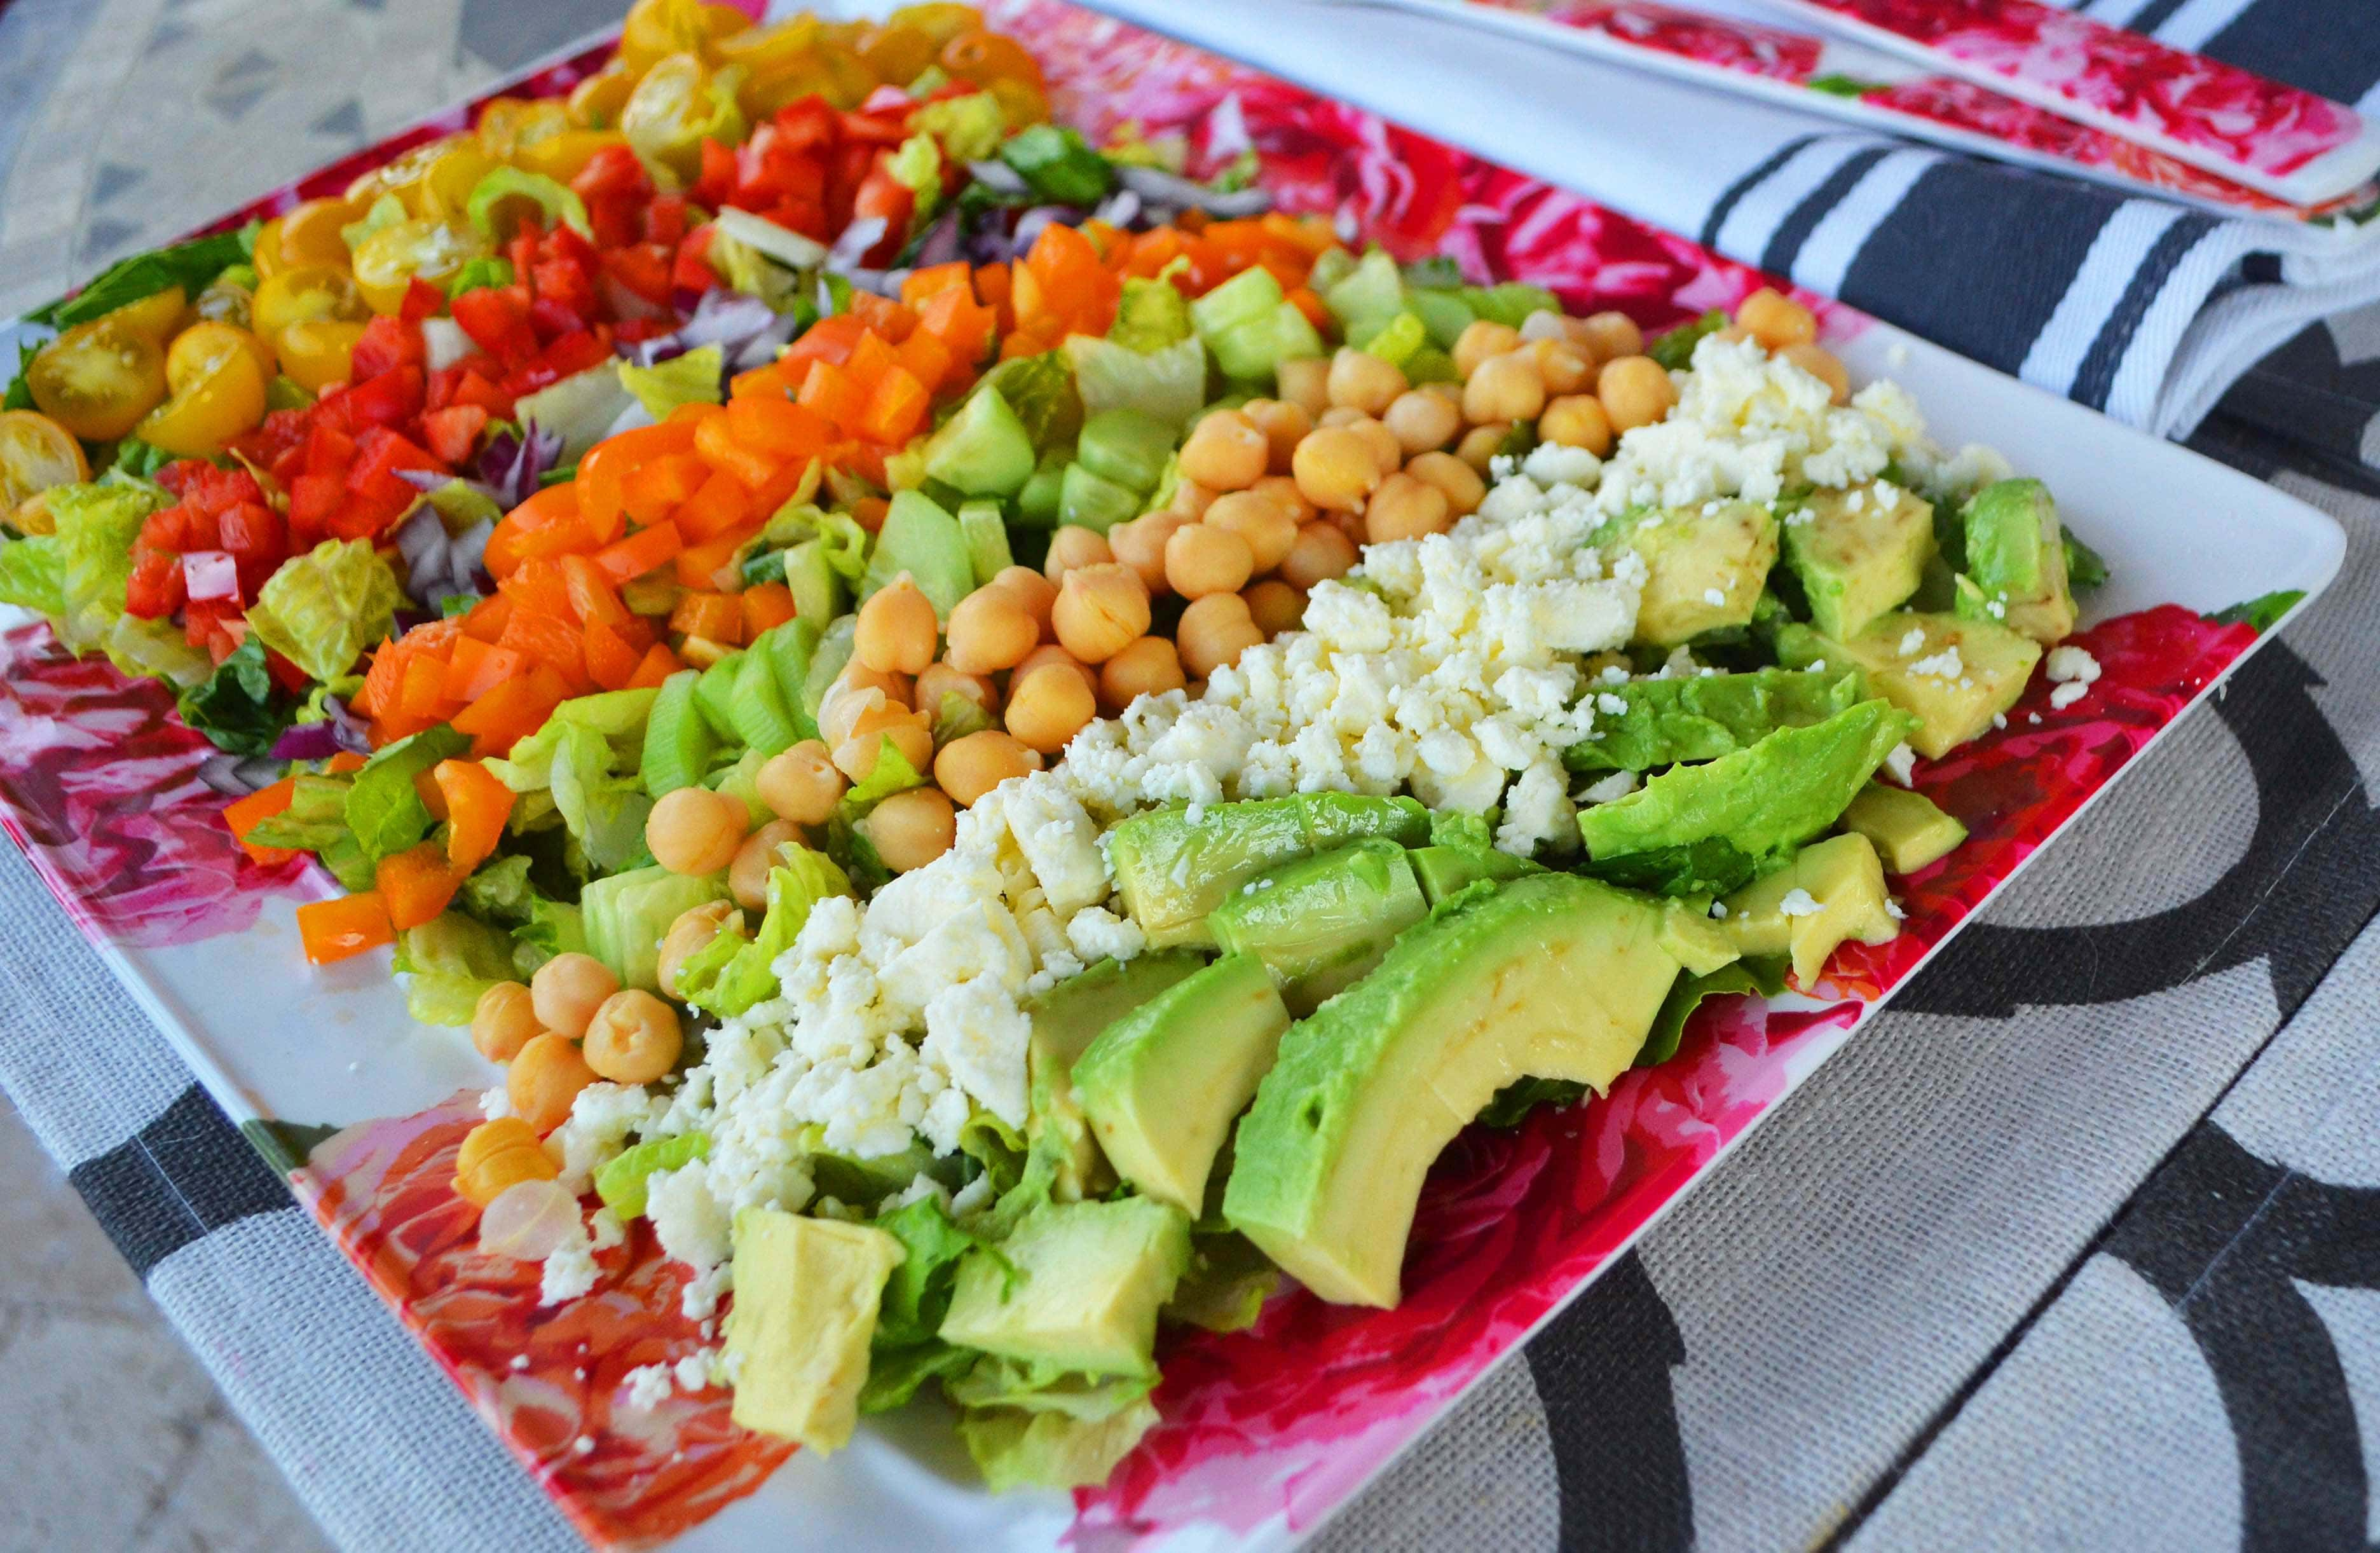 Color Me Pretty Salad. It's a powerhouse salad packed with every color in the rainbow of vegetables.